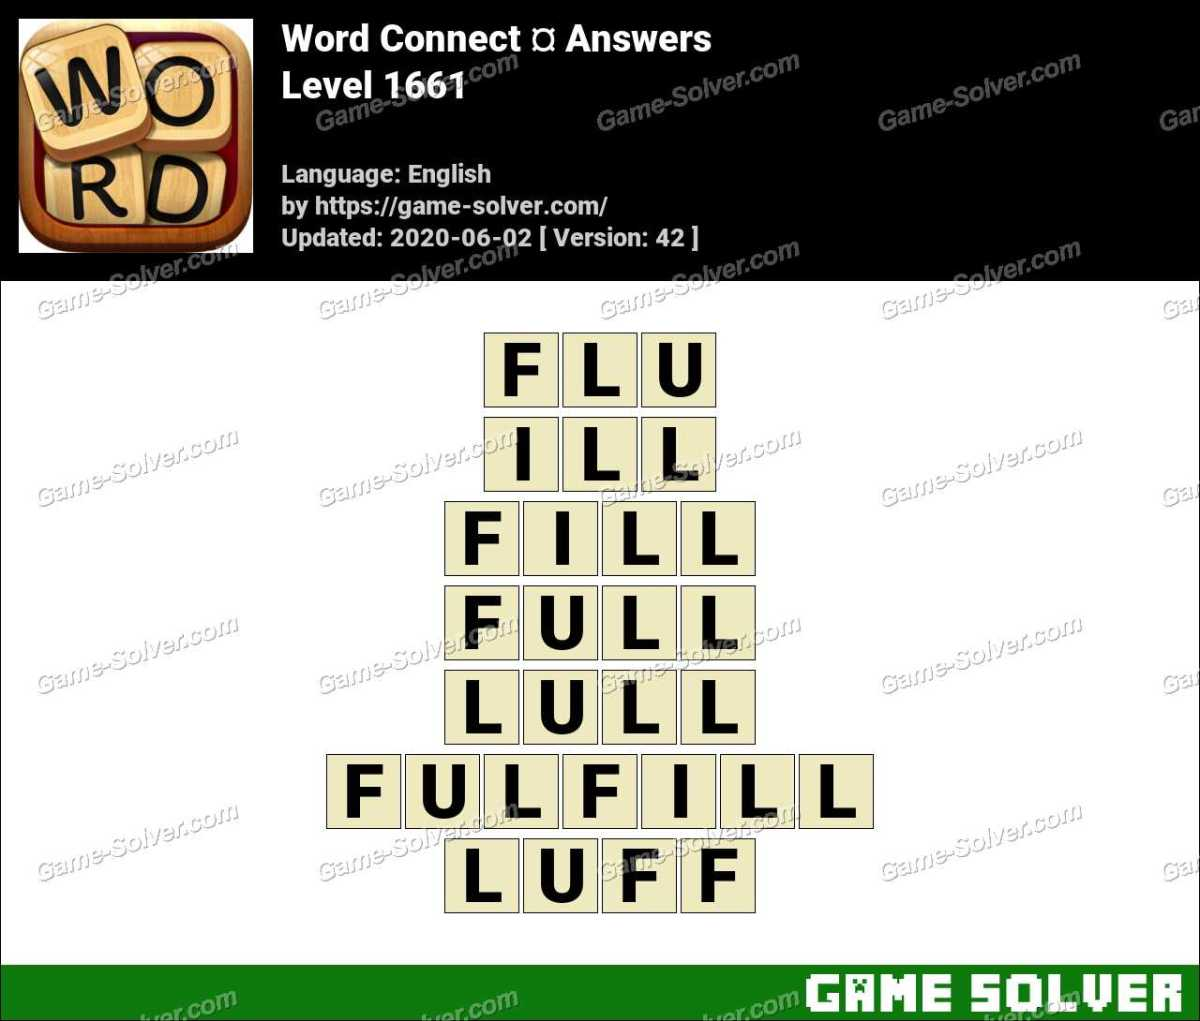 Word Connect Level 1661 Answers